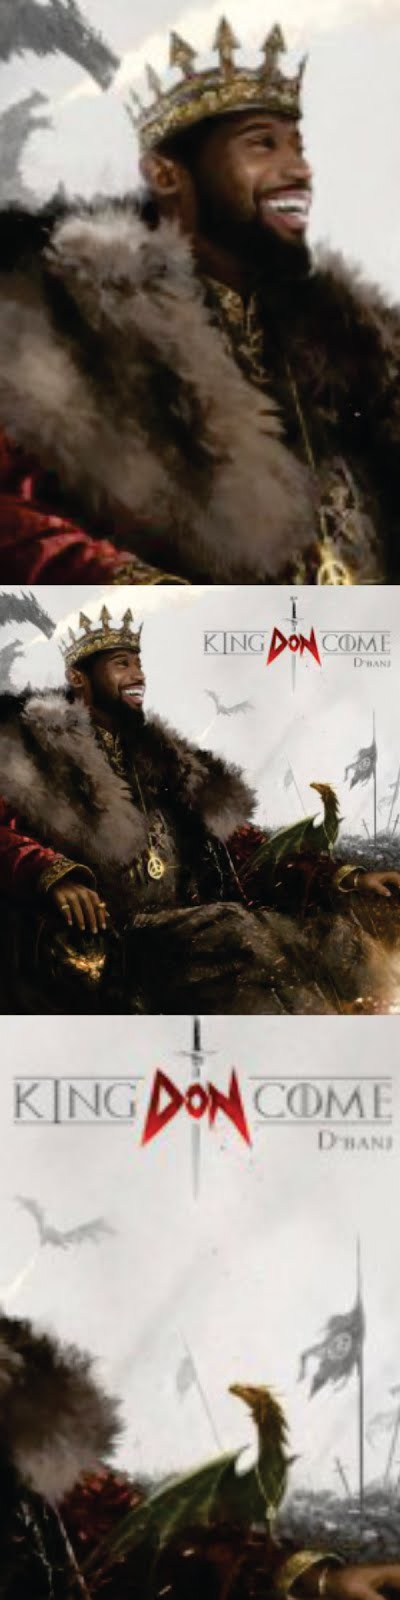 "D'Banj New Album ""KINGDONCOME"""